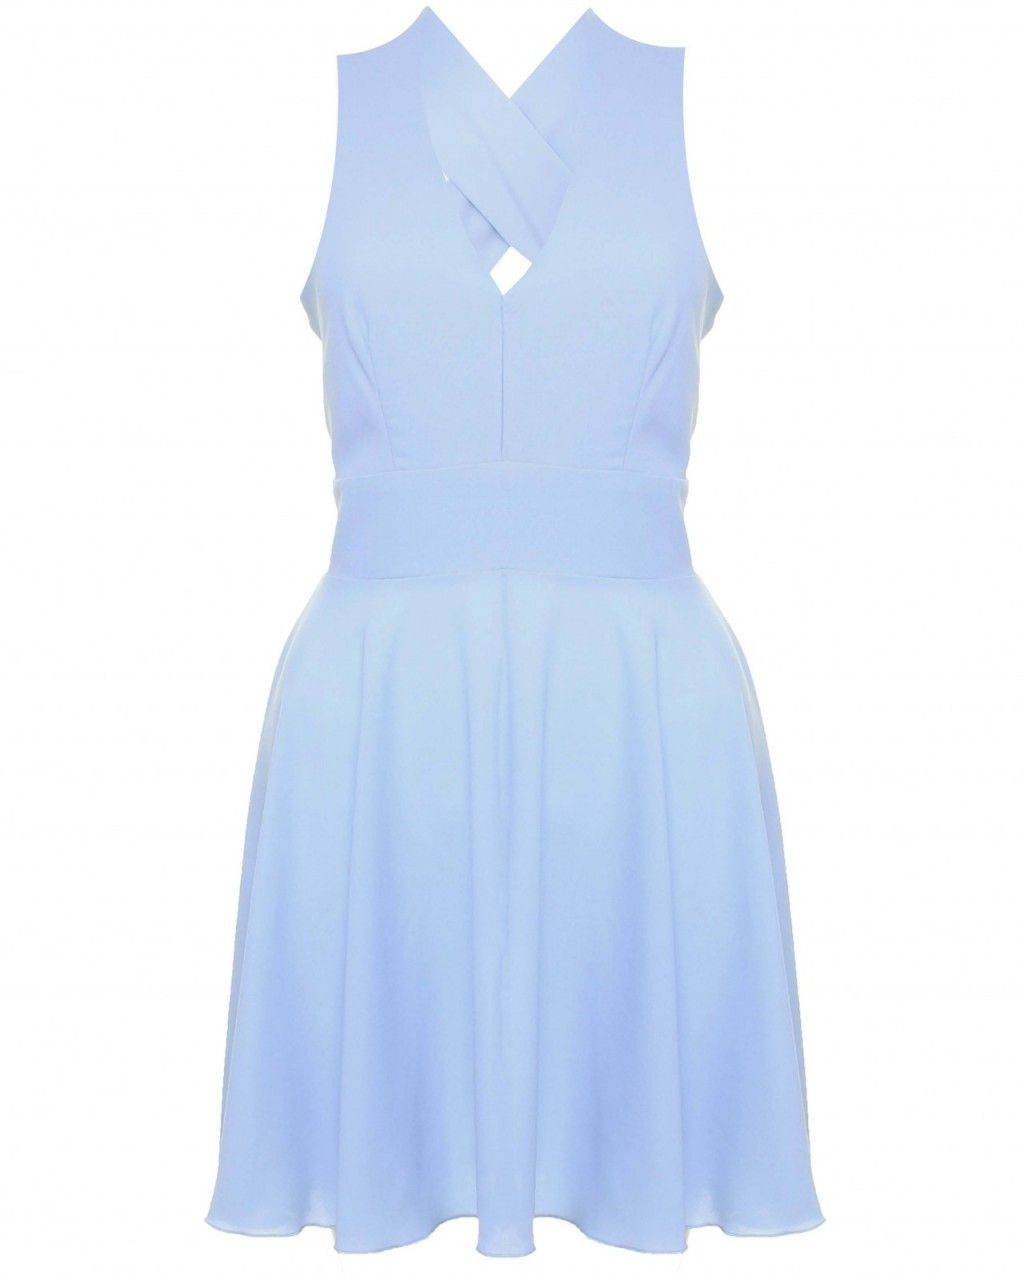 LOVE Baby Blue Cross Back Skater Dress - In Love With Fashion